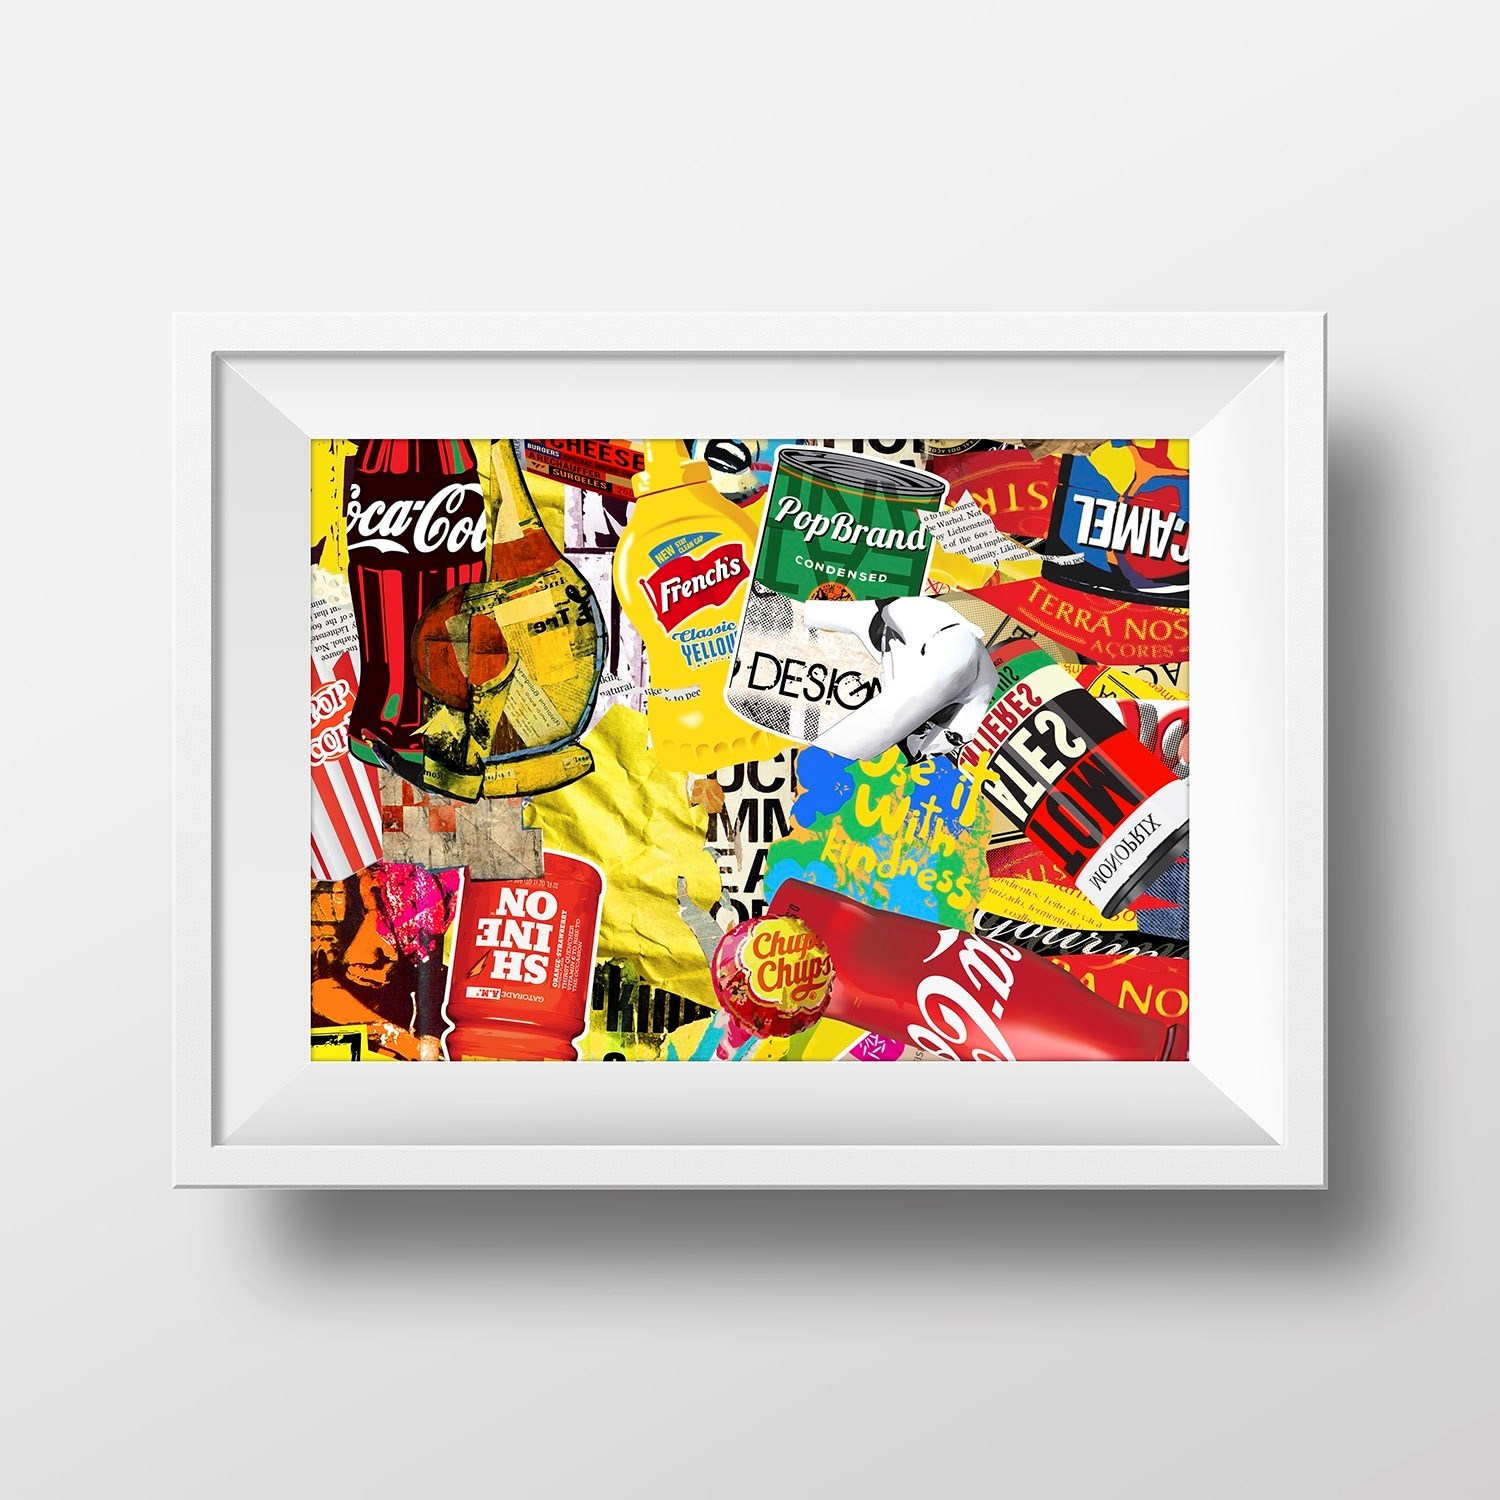 Pop Brand, original Avant-Garde Collage Drawing and Illustration by Maria João Faustino